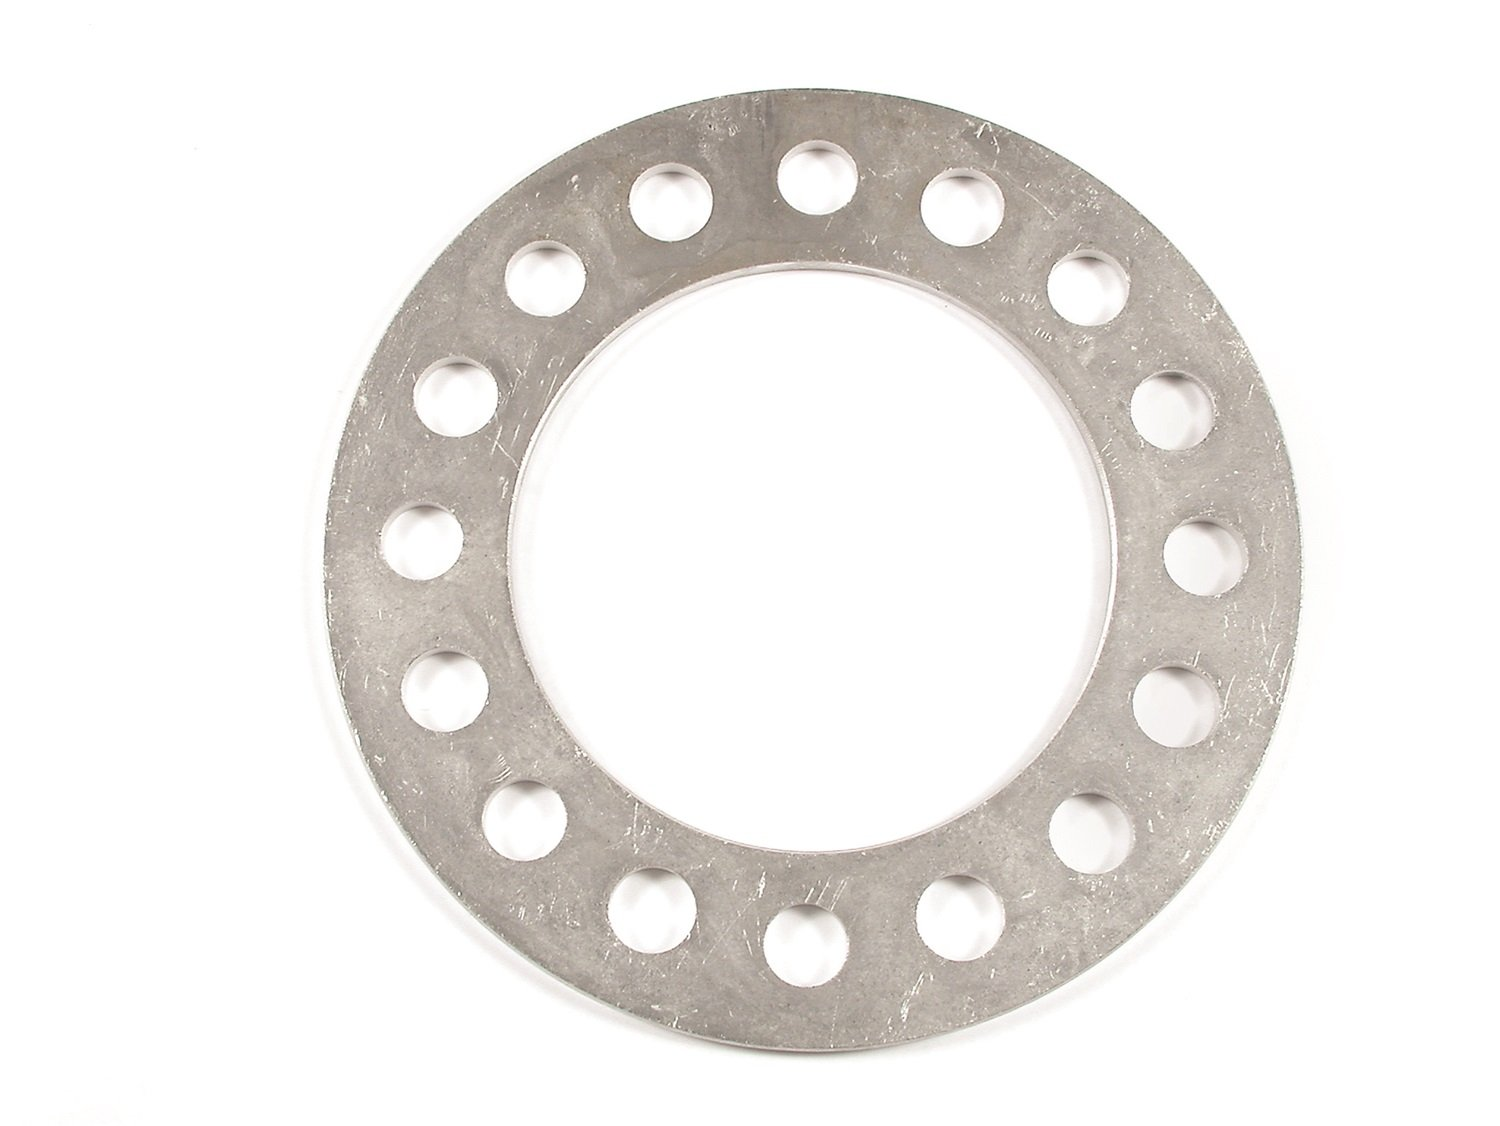 Mr Set of 2 Gasket 2377 Disc Brake Wheel Spacer